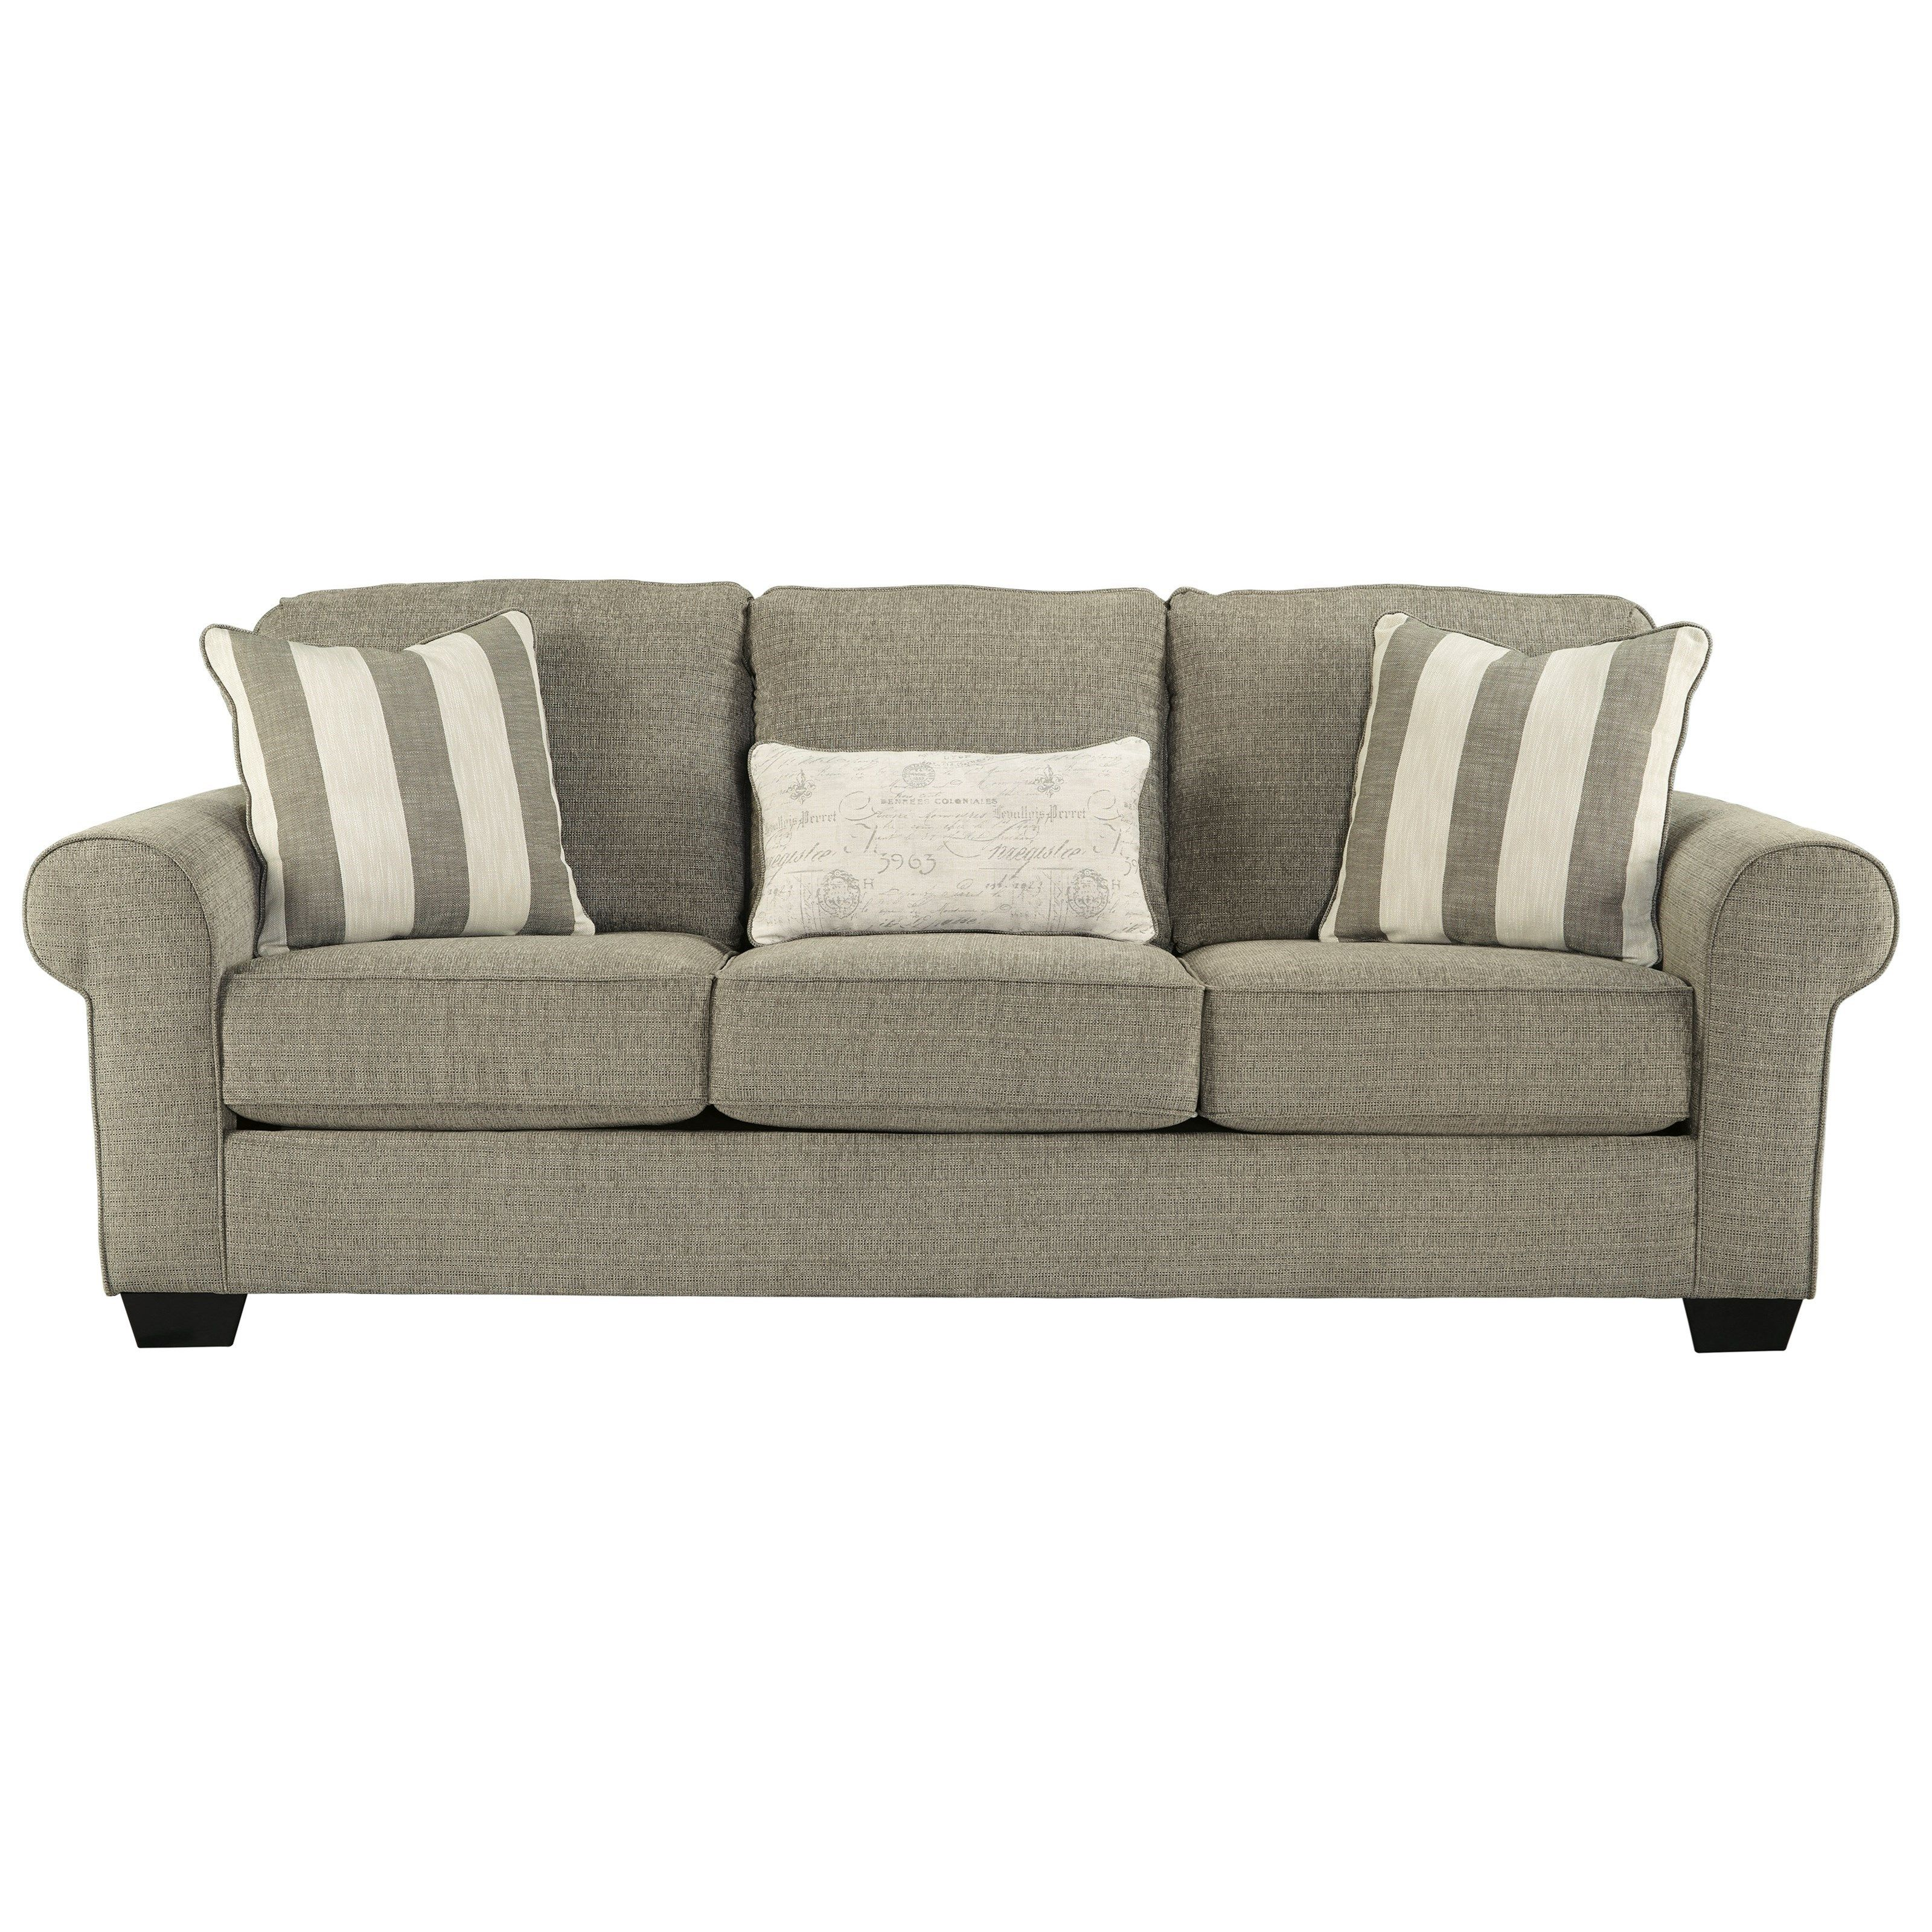 Cheny Furniture Reviews